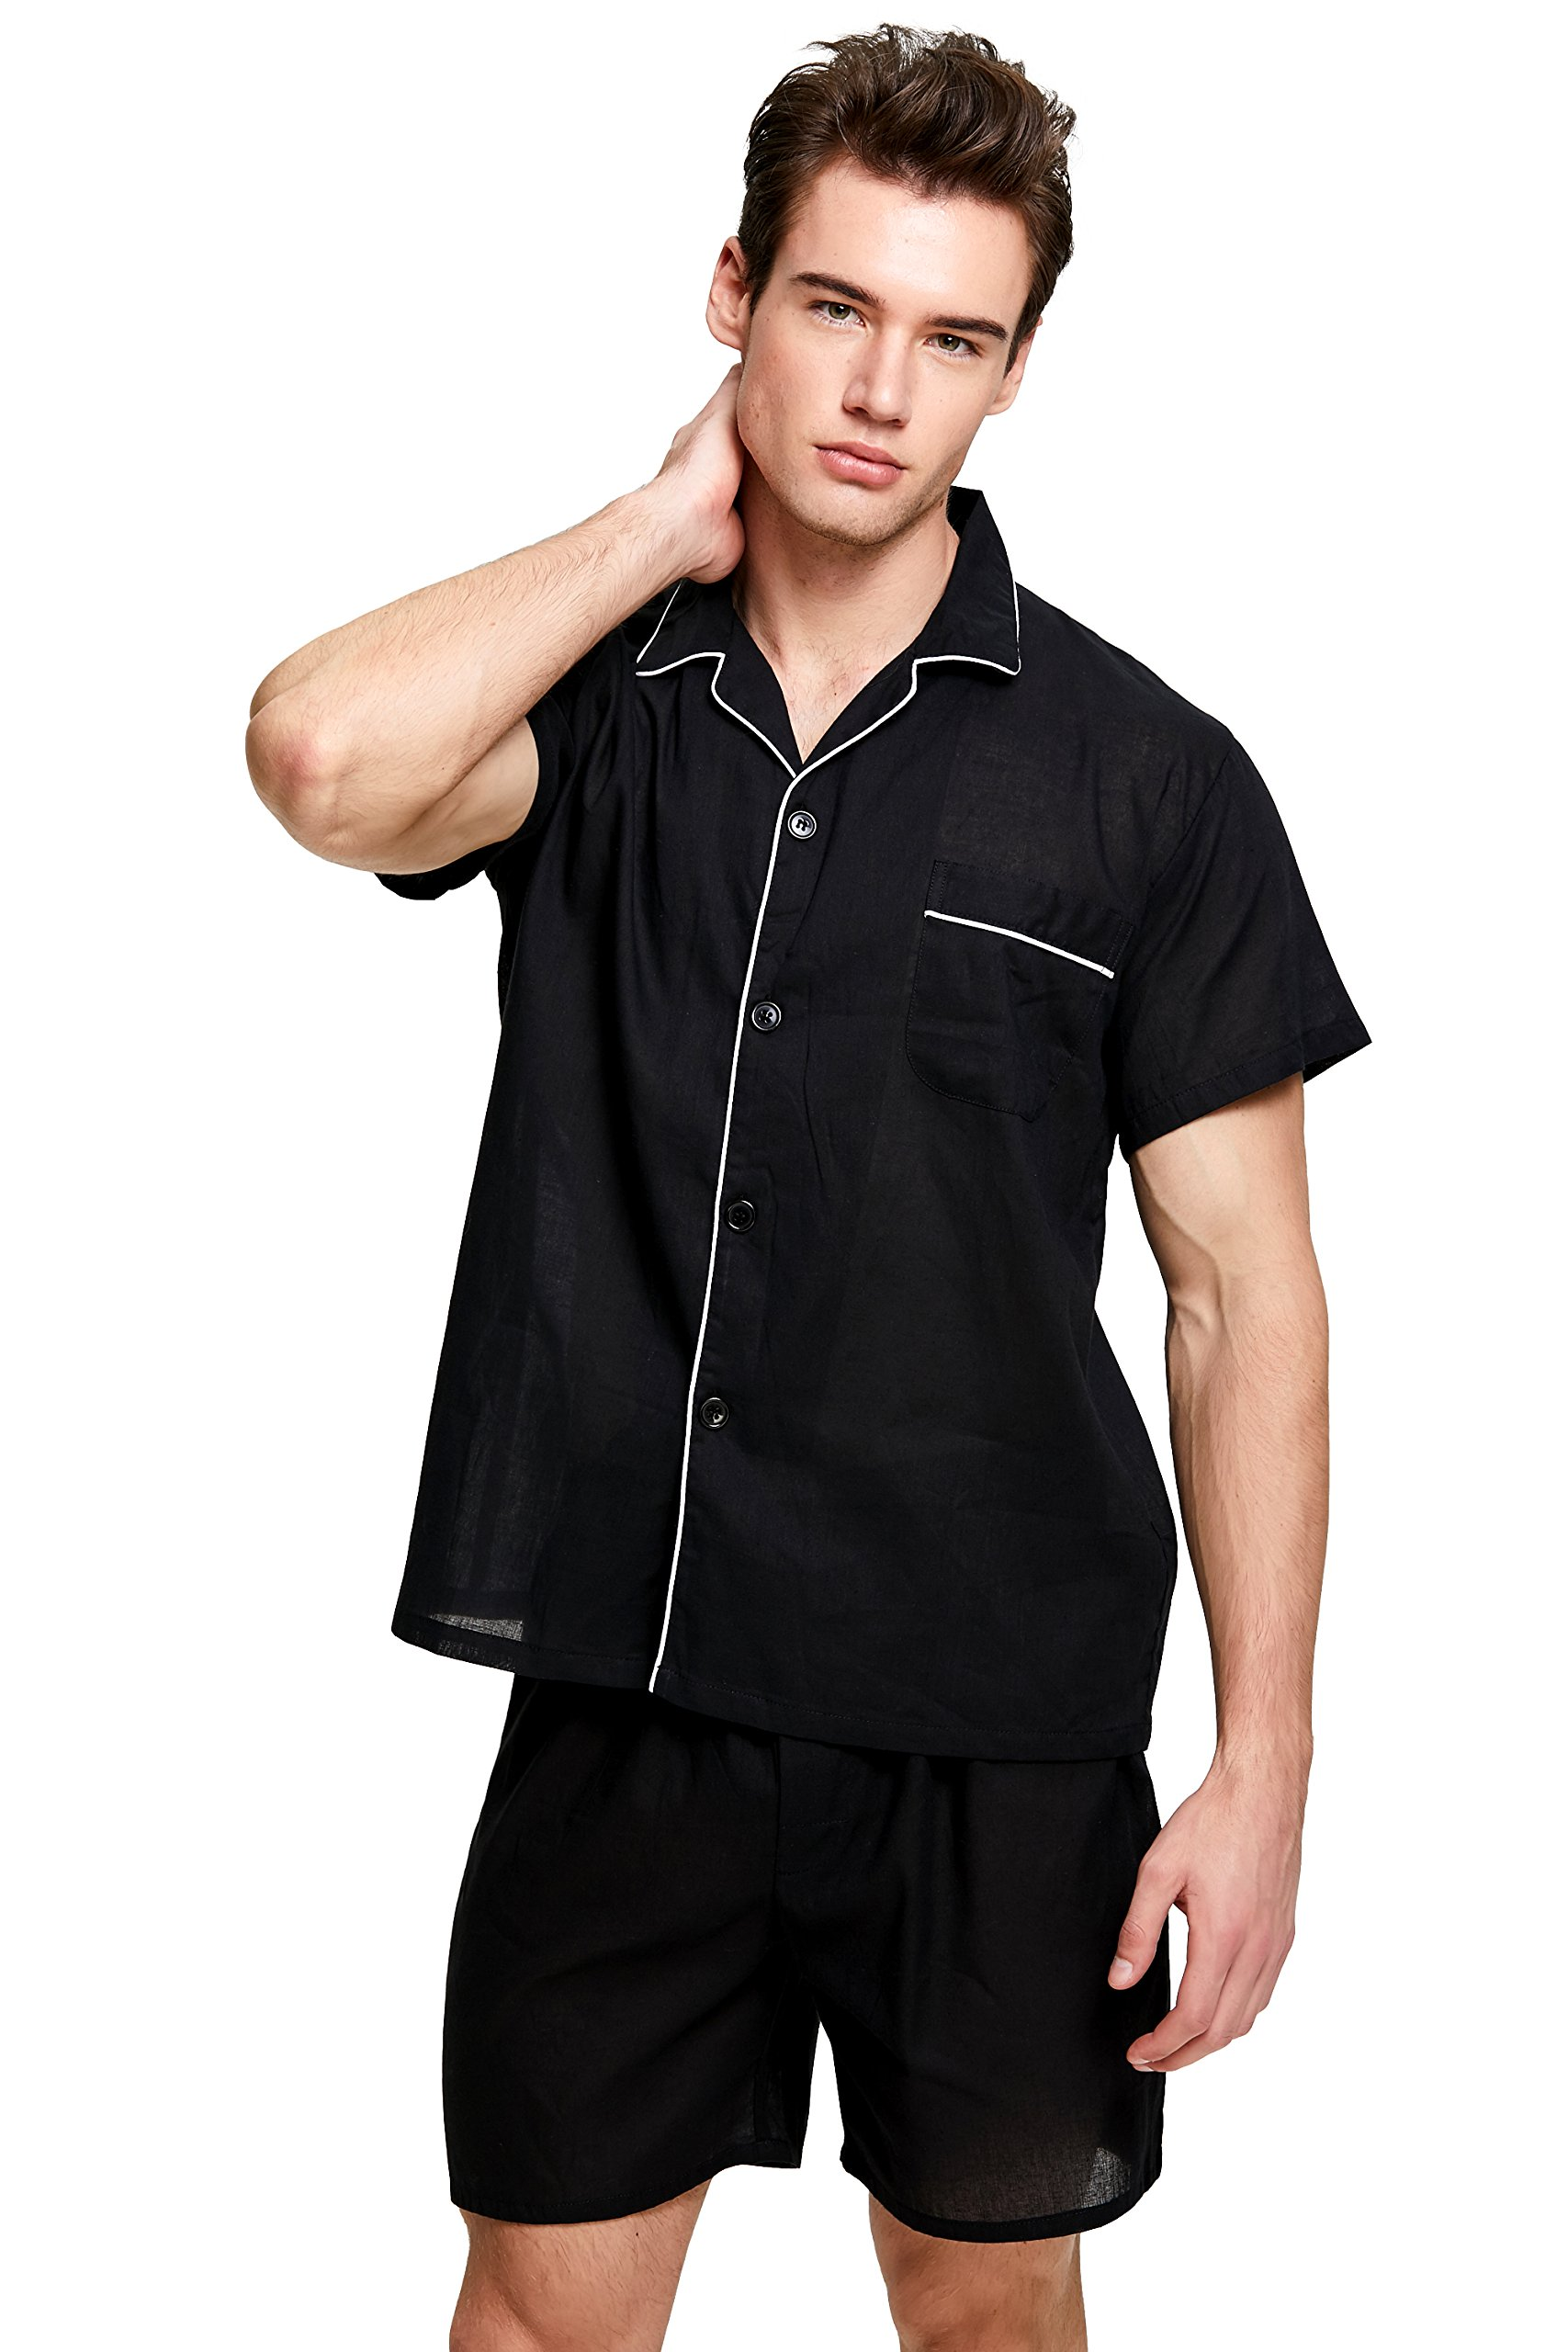 Men's Cotton Pajama Set, Short Sleeve Woven Sleepwear with Shorts, Button Down Nightwear (Black with White Piping, X-Large)